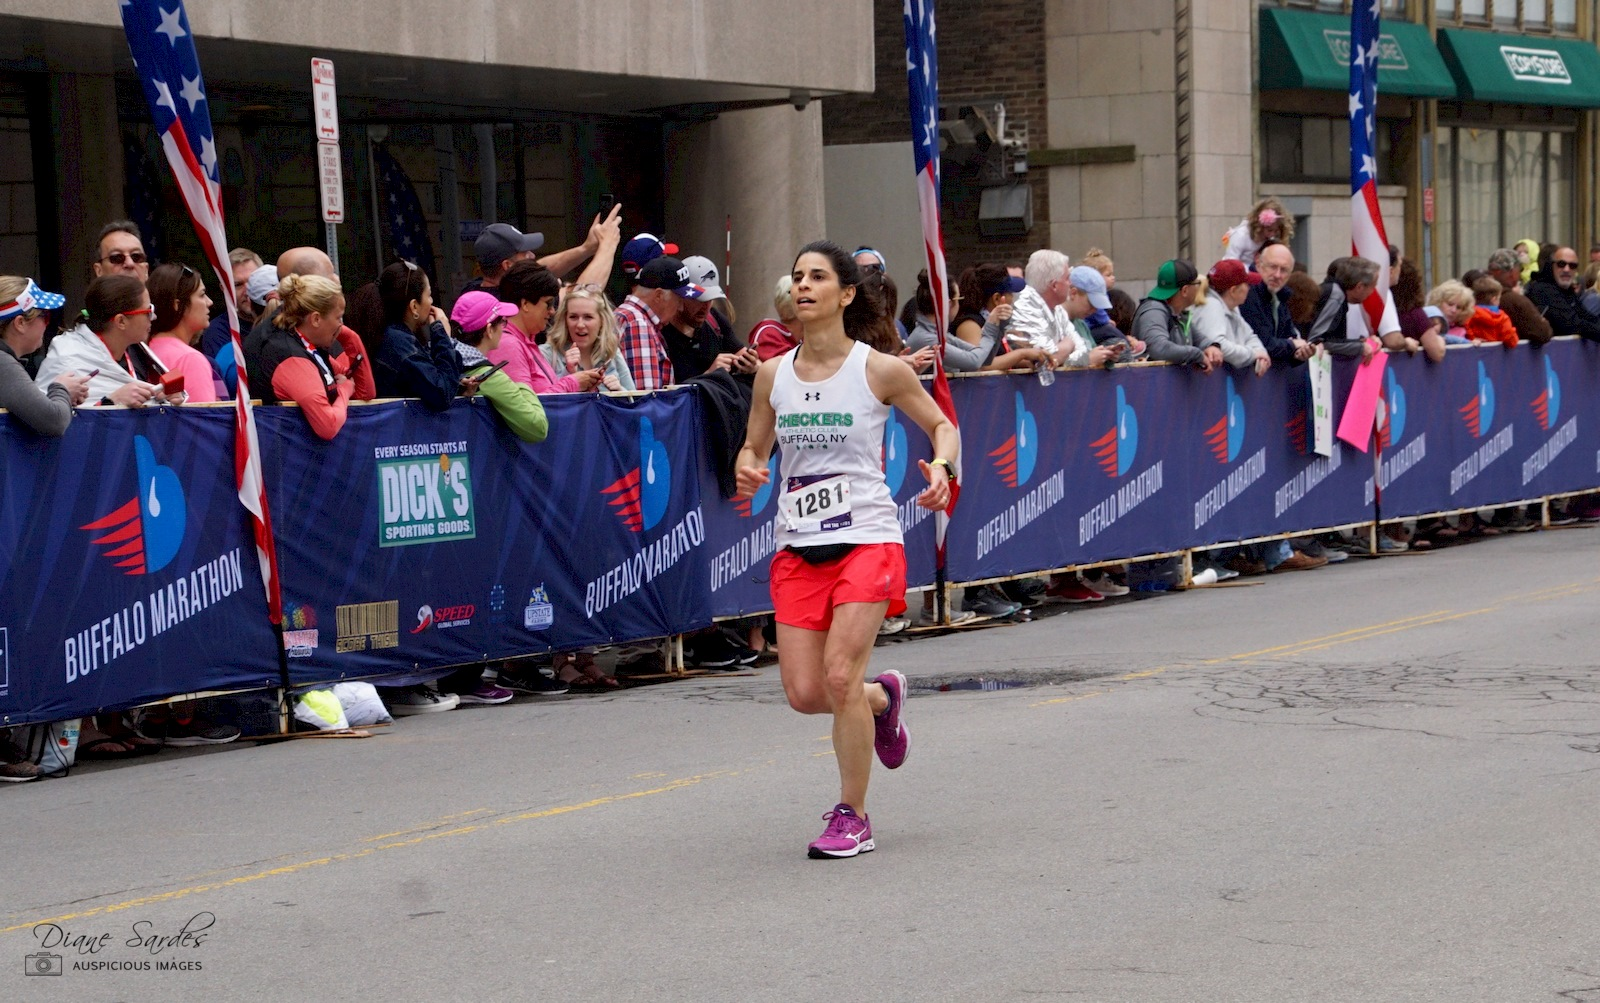 Buffalo Marathon weekend 1157.jpg